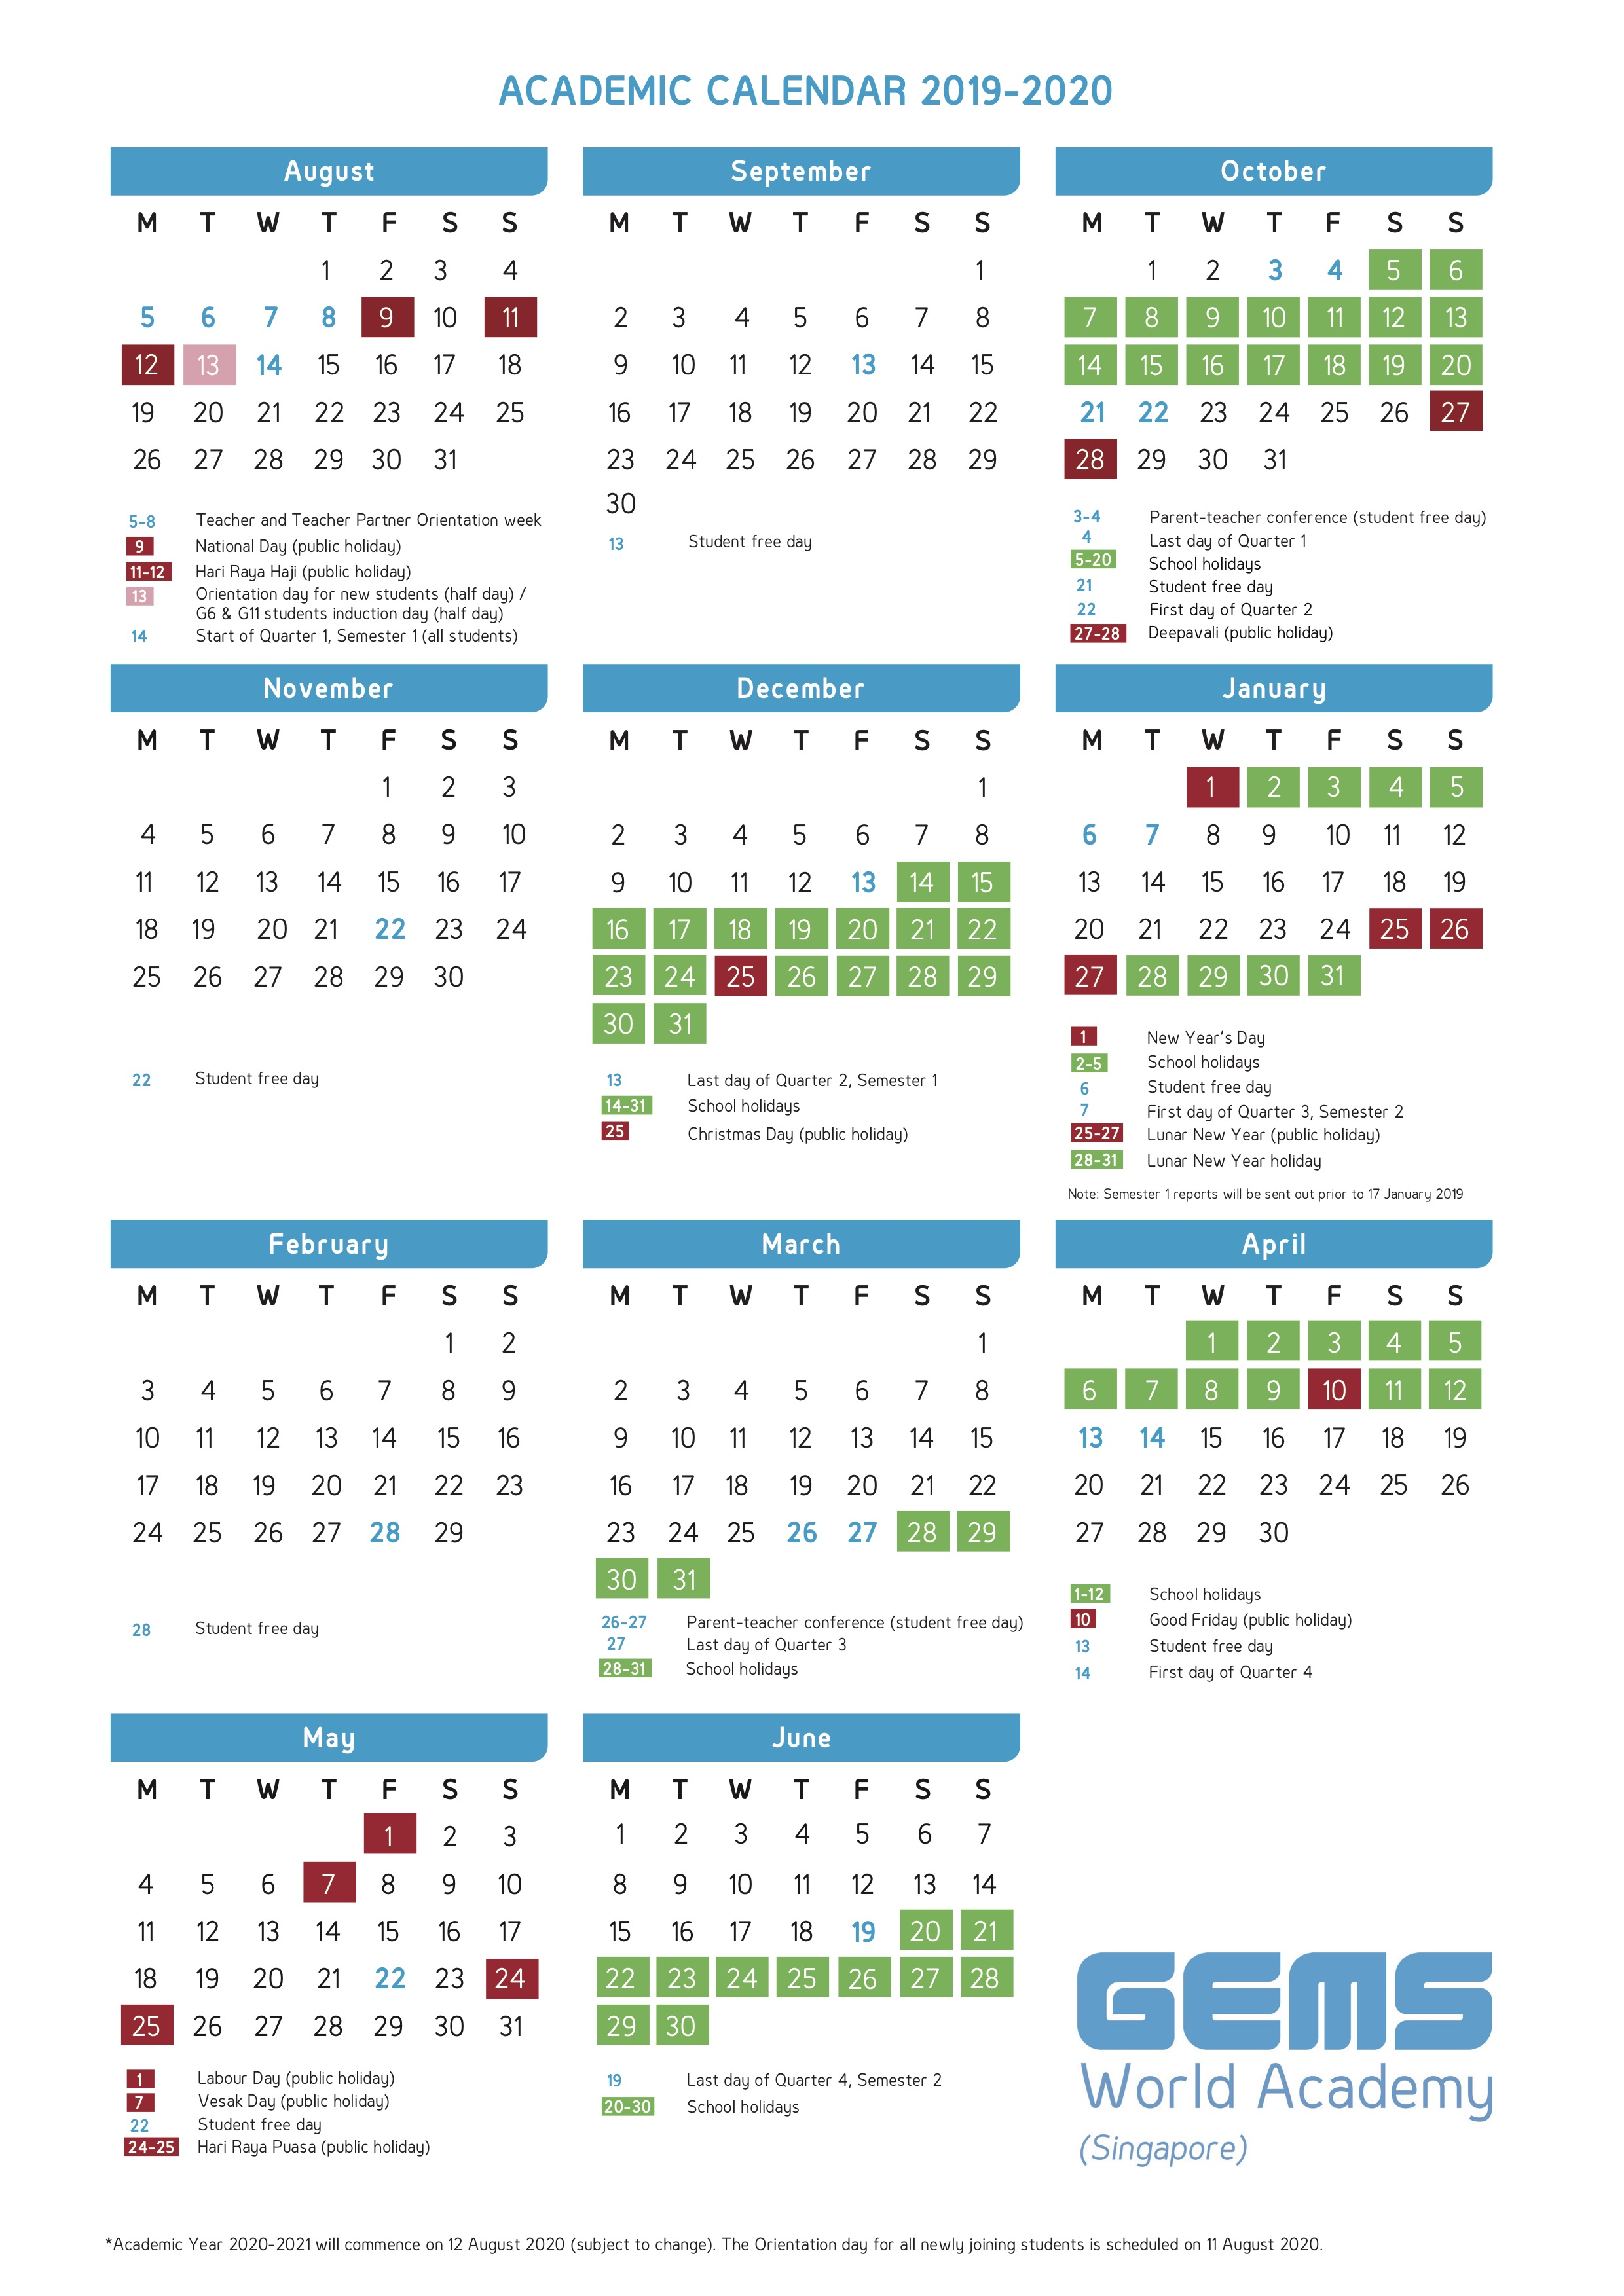 Academic Calendar | Gems World Academy (Singapore) with regard to Gems World Academy Academic Calendar